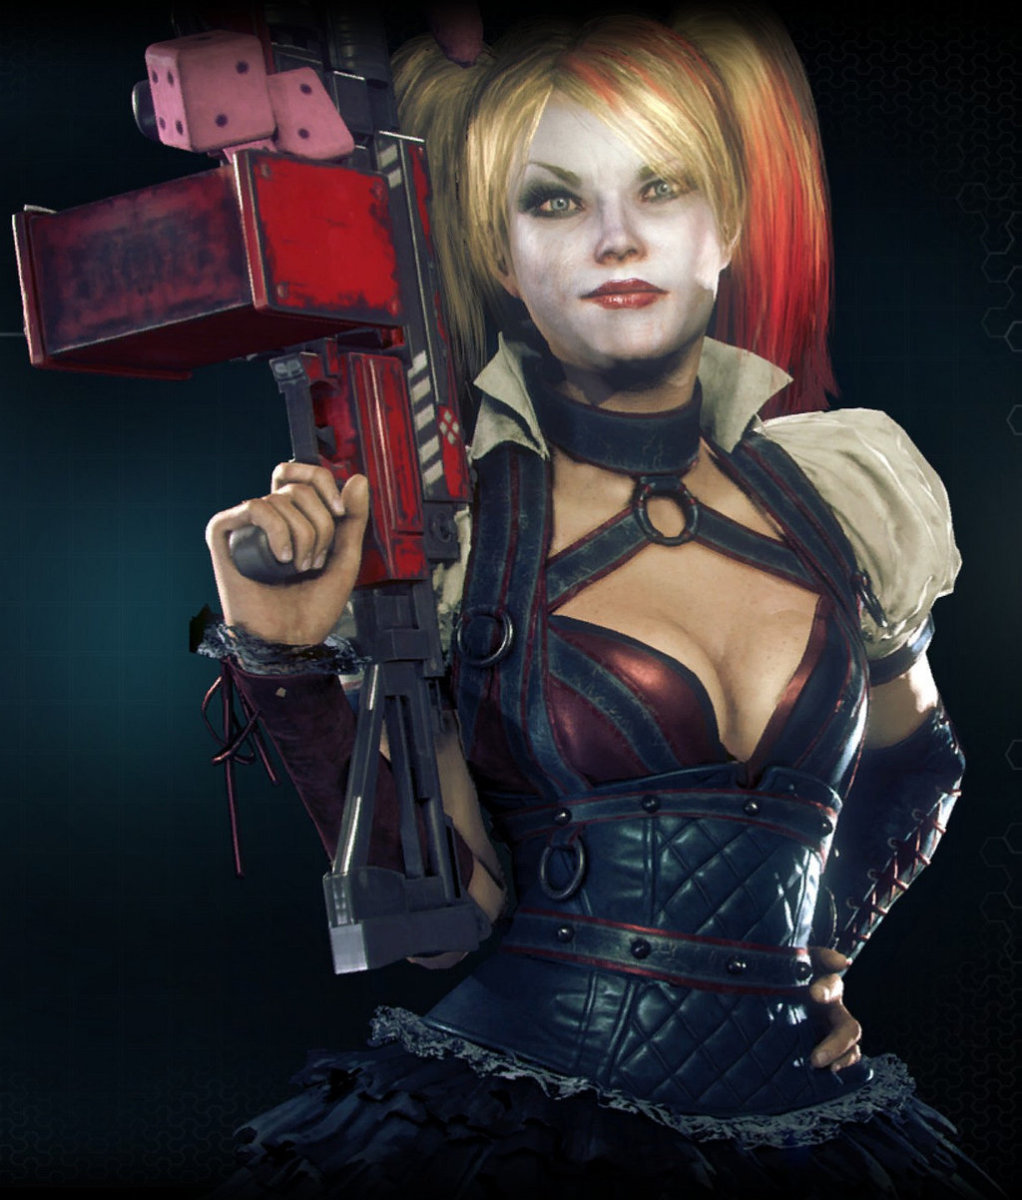 The gorgeous Harley Quinn.